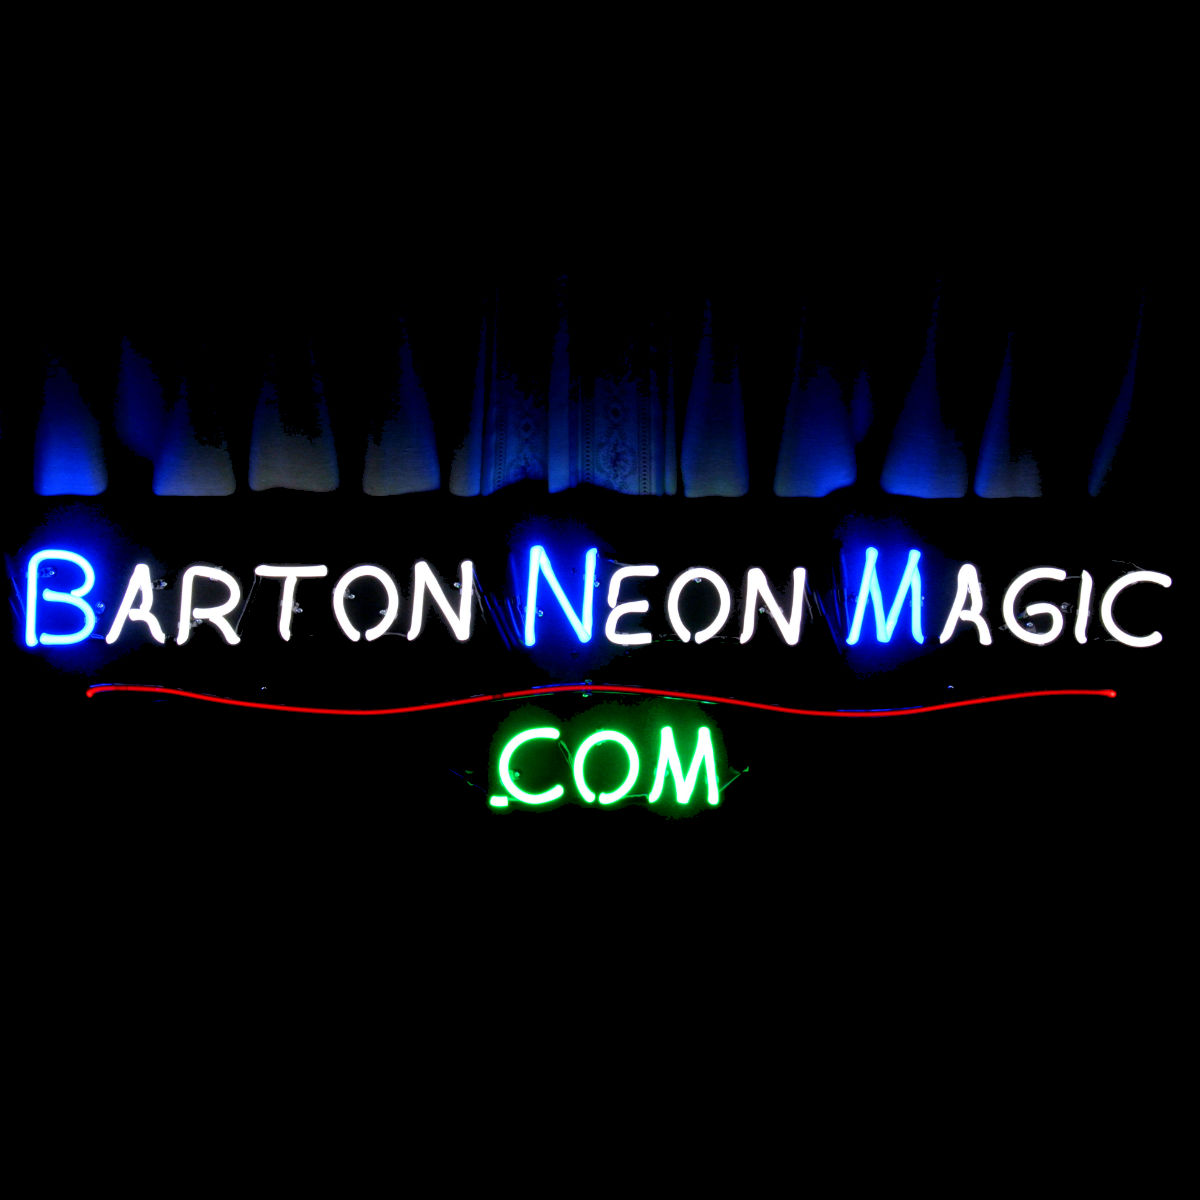 BartonNeonMagic.com - your source for BRILLIANT CUSTOM HAND-BLOWN AUTOMOTIVE NEON SIGNS!